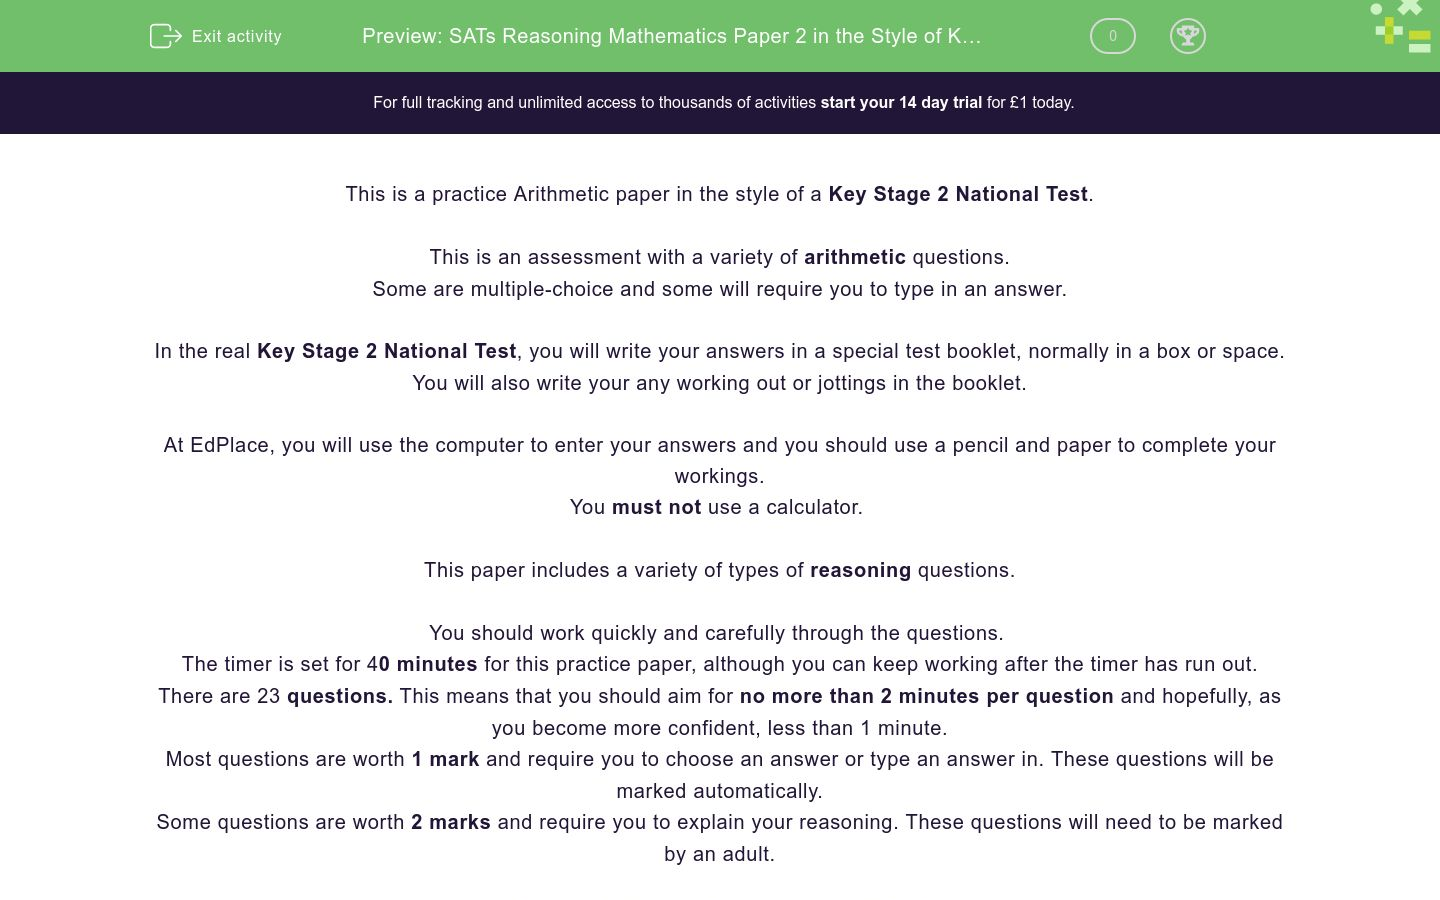 'SATs Reasoning Mathematics Paper 2 in the Style of Key Stage 2 National Tests (Practice 1)' worksheet